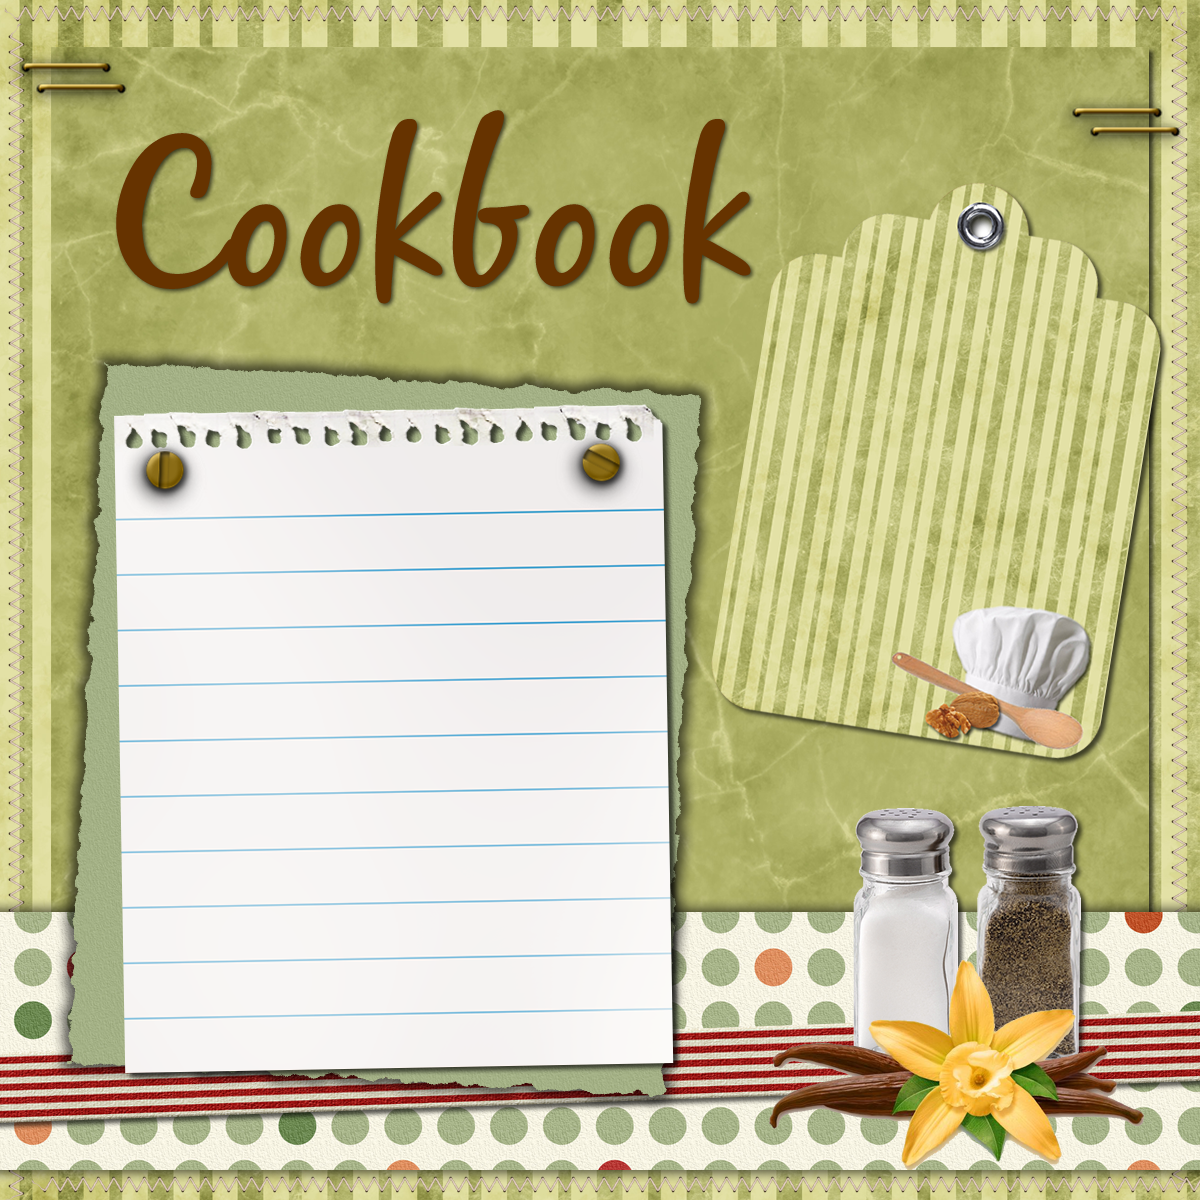 Cookbook Covers Printable Free : Living life at the alverno